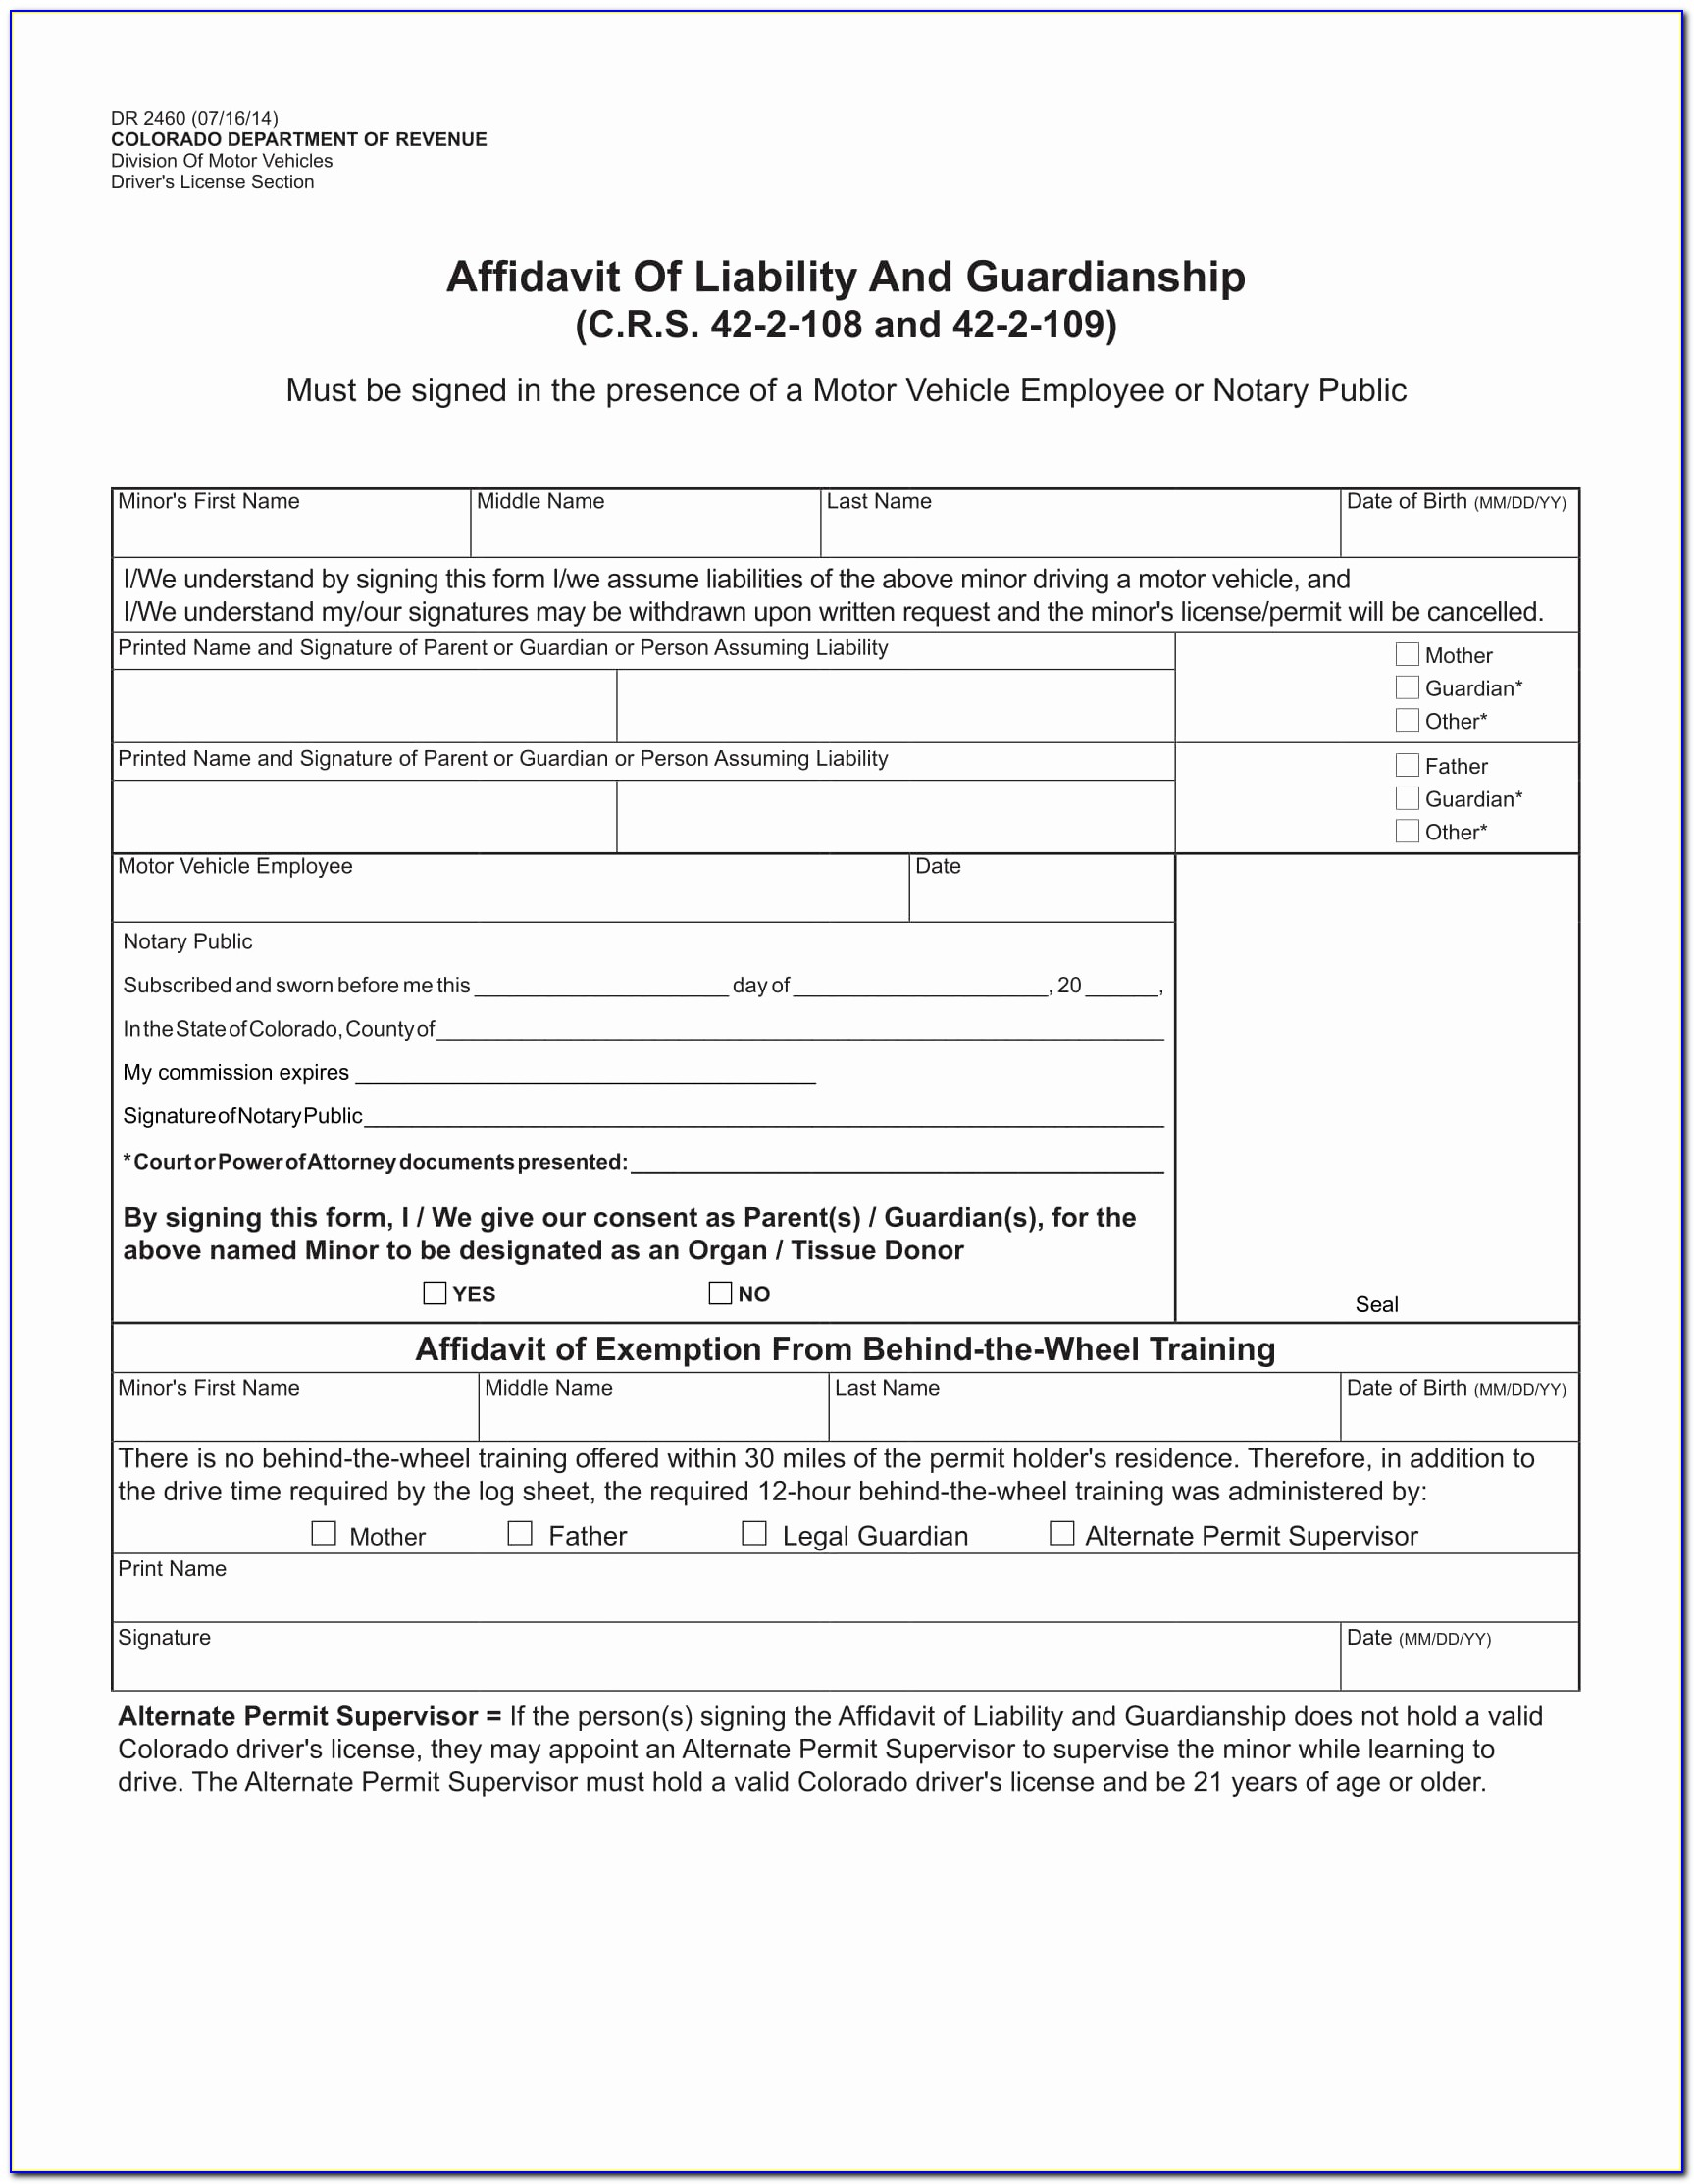 Temporary Guardianship Agreement Form Best Of 4 Examples Of Temporary Guardianship Forms And When To Use Them